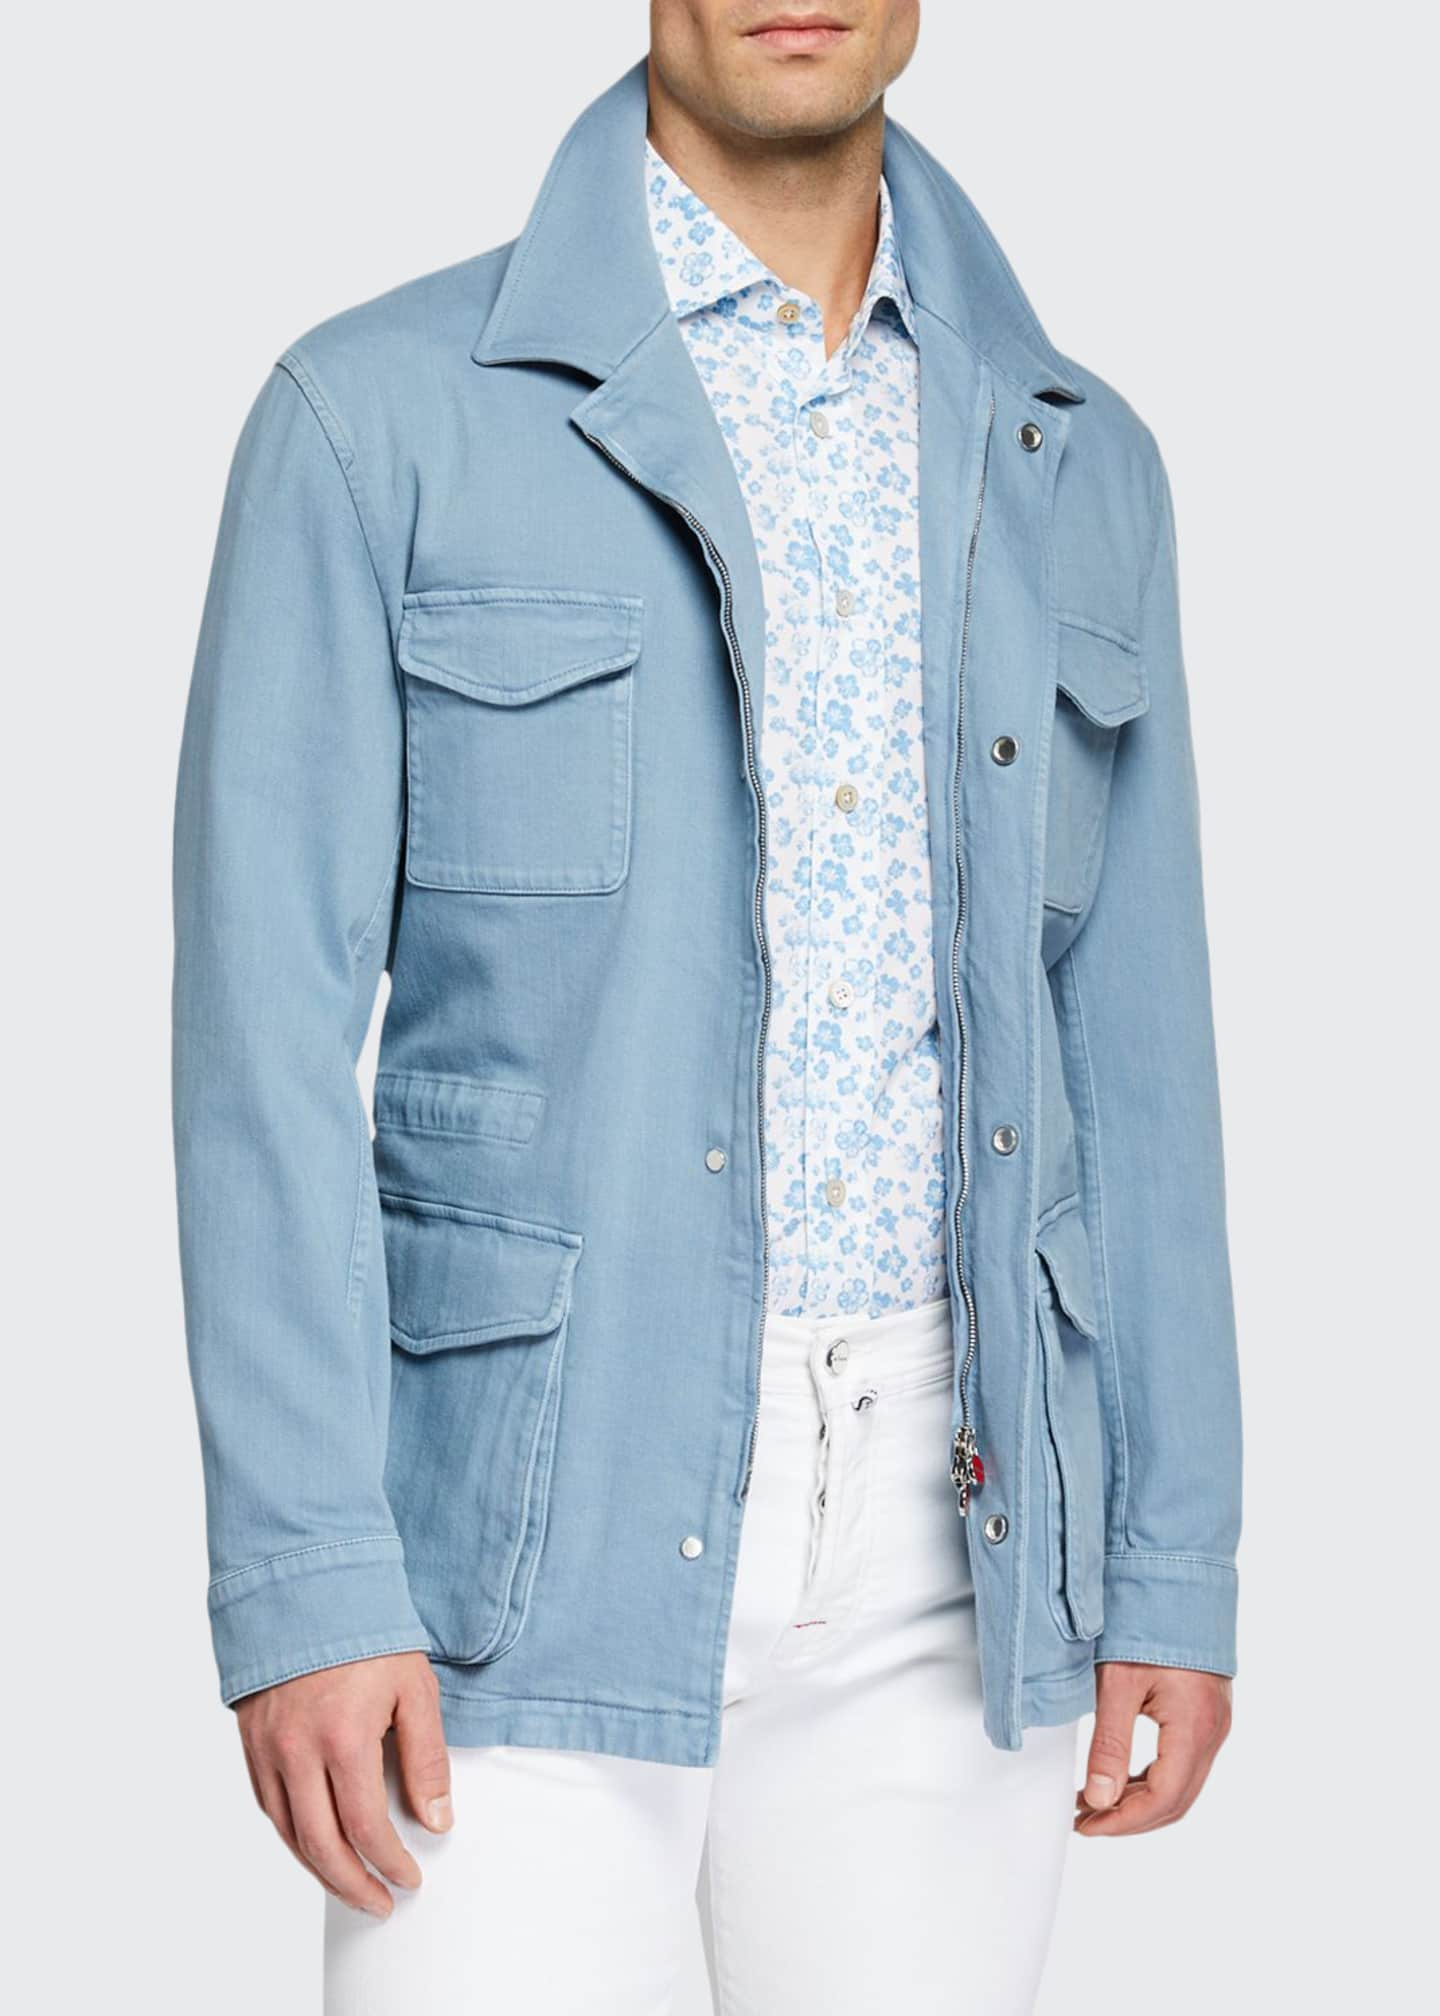 Image 1 of 3: Men's Light Wash Denim Safari Jacket